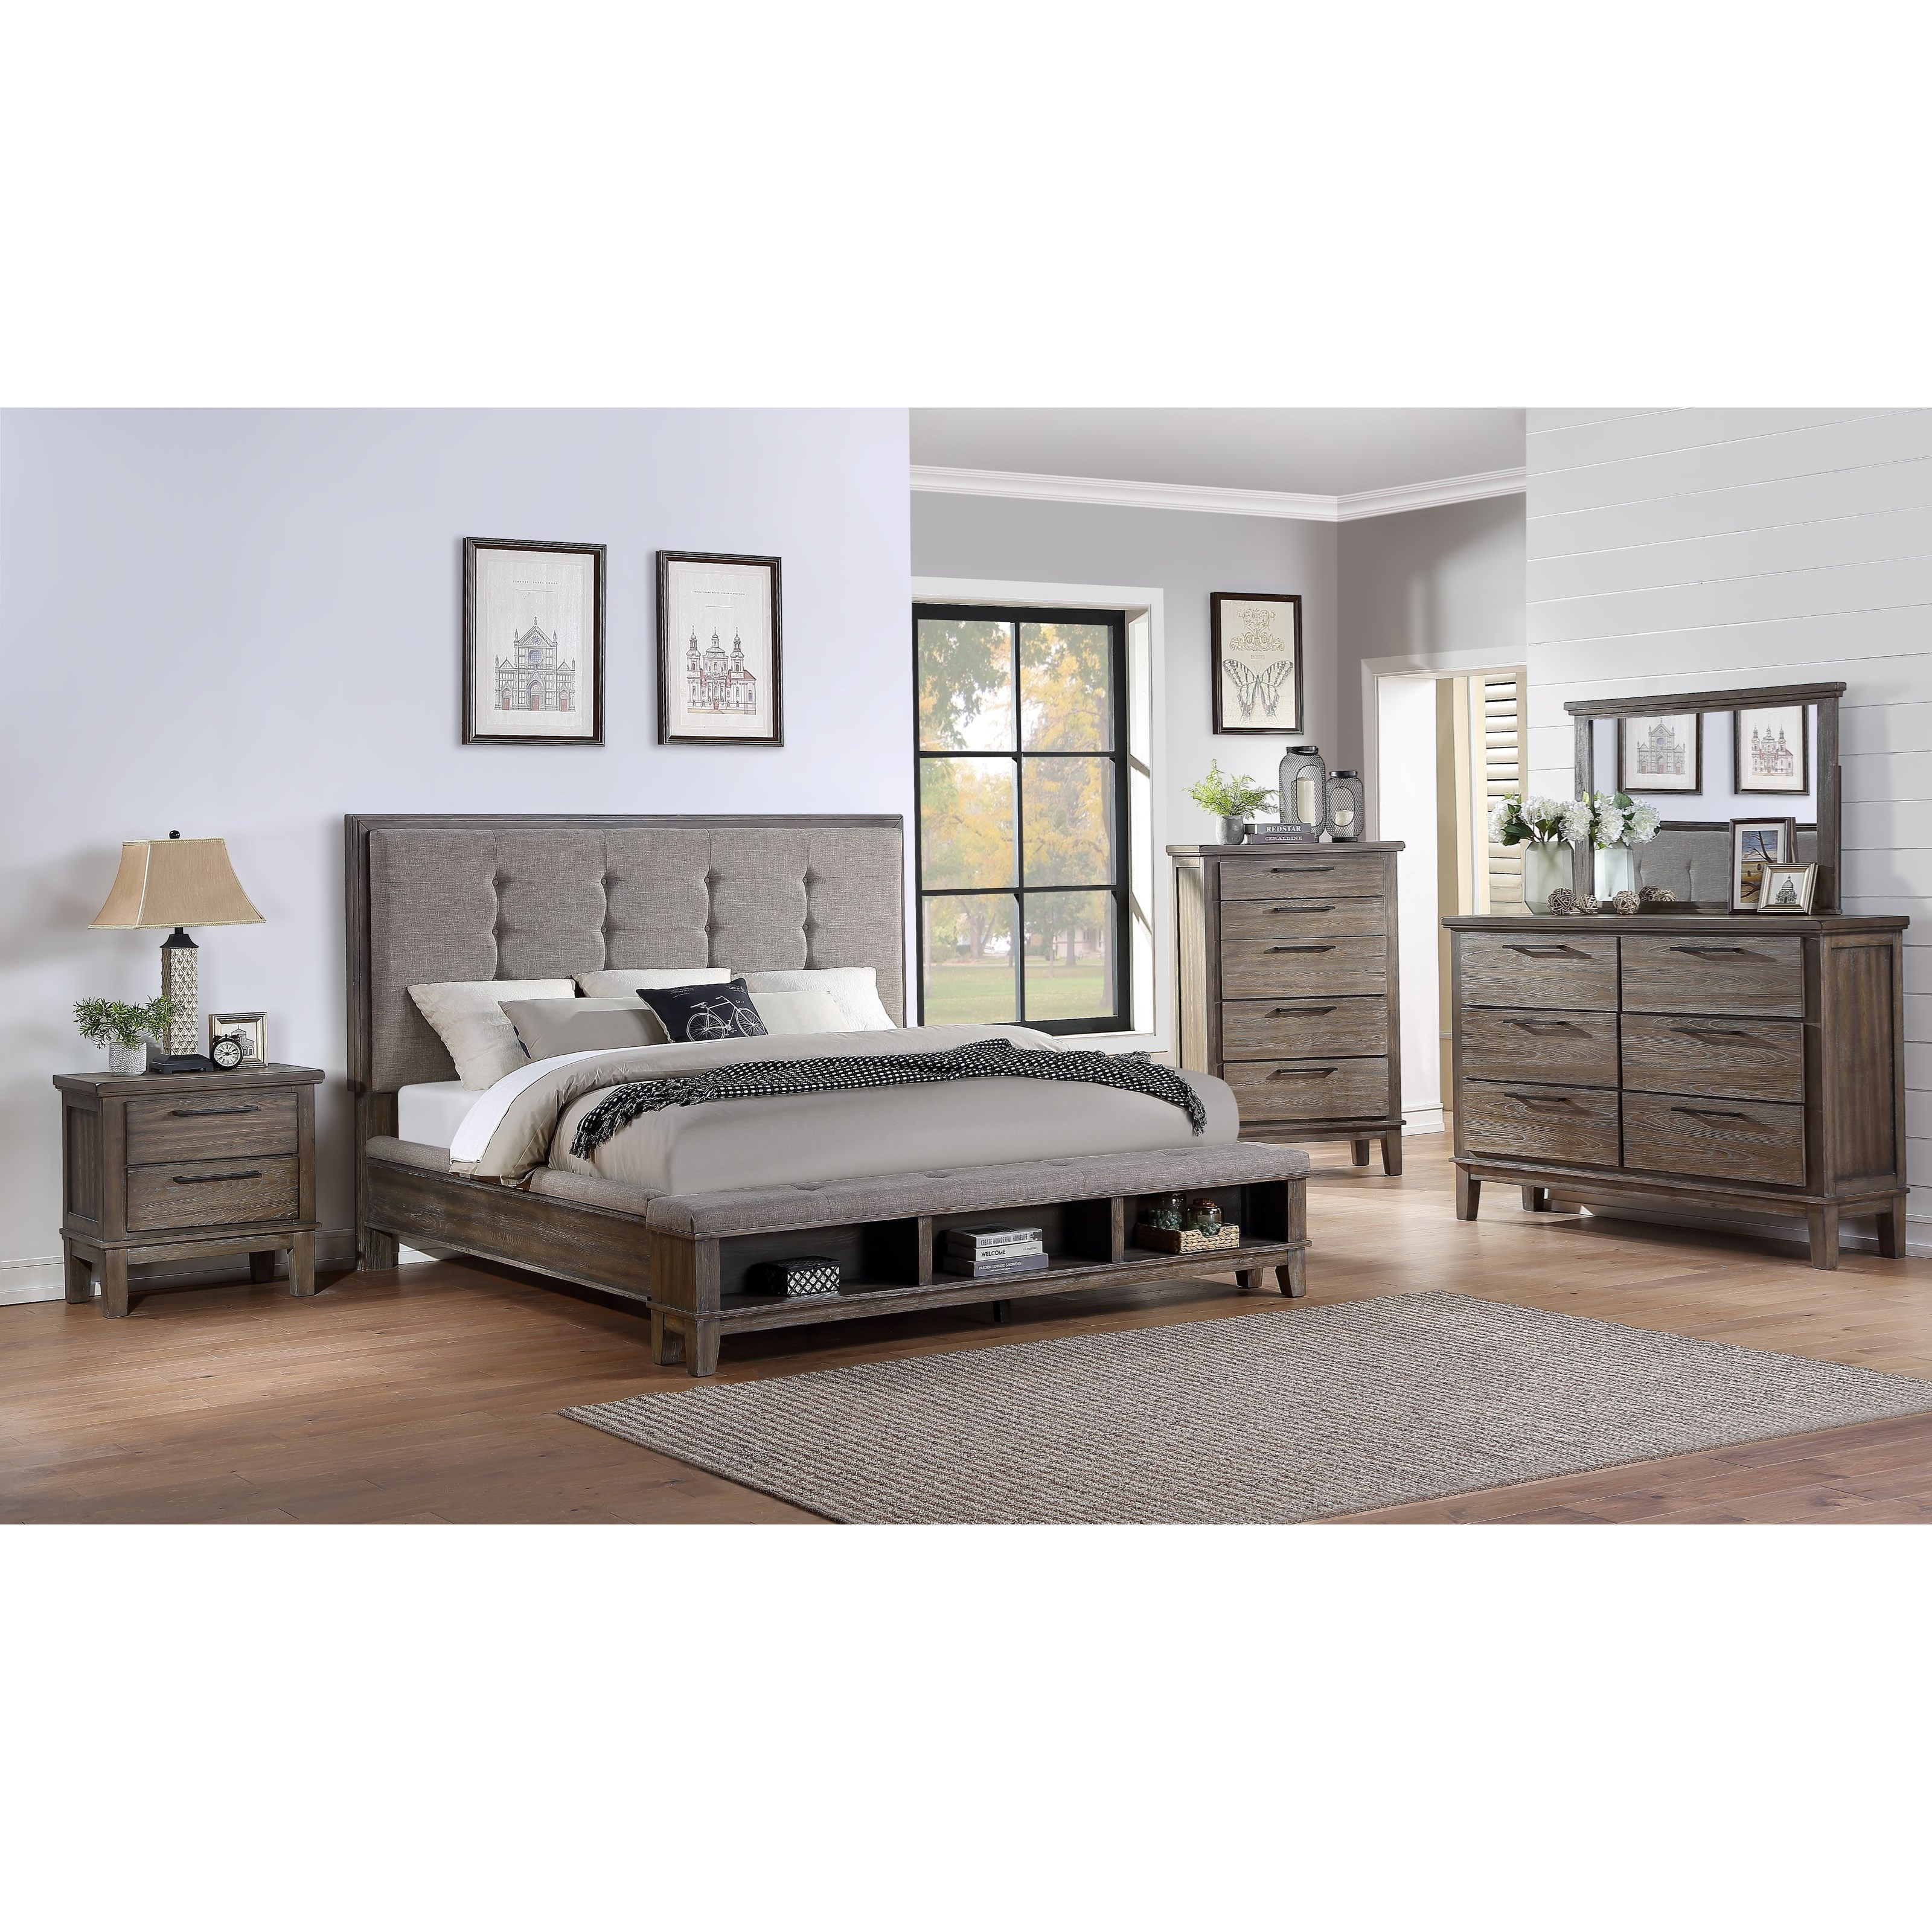 Cagney Queen Bedroom Group - No Chest by New Classic at Beck's Furniture